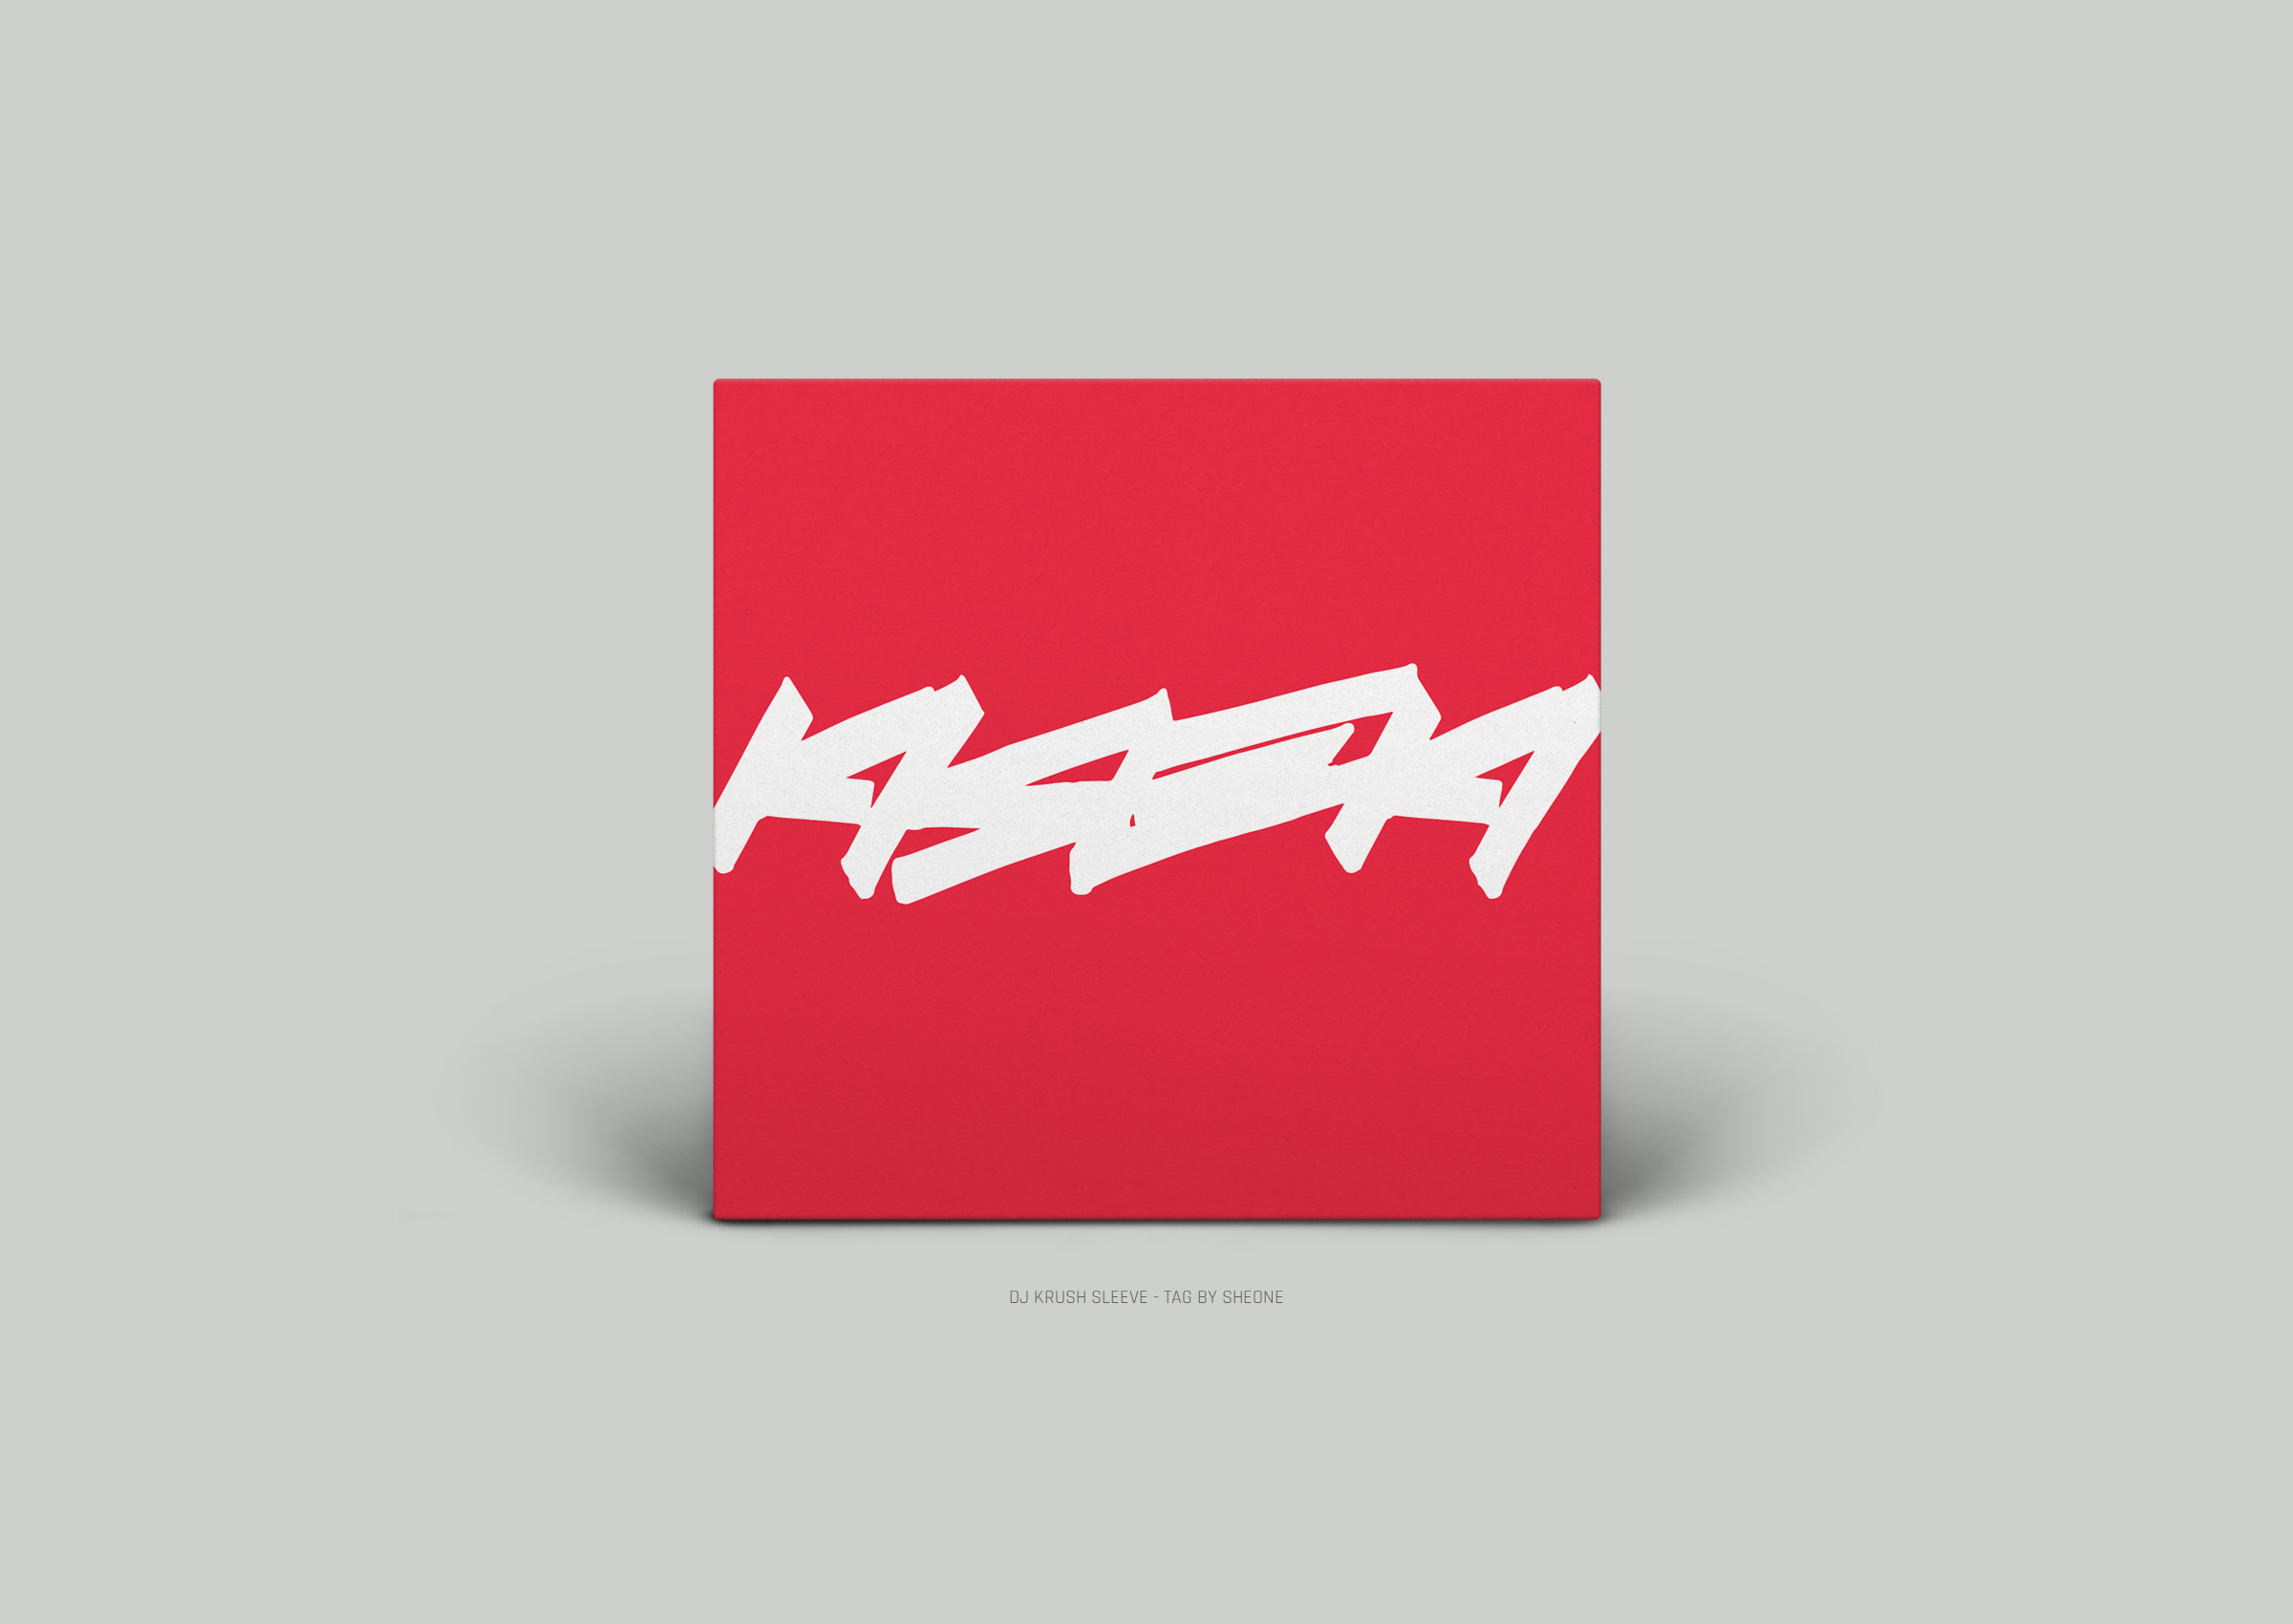 DJ Krush -Kiseki Record Sleeve